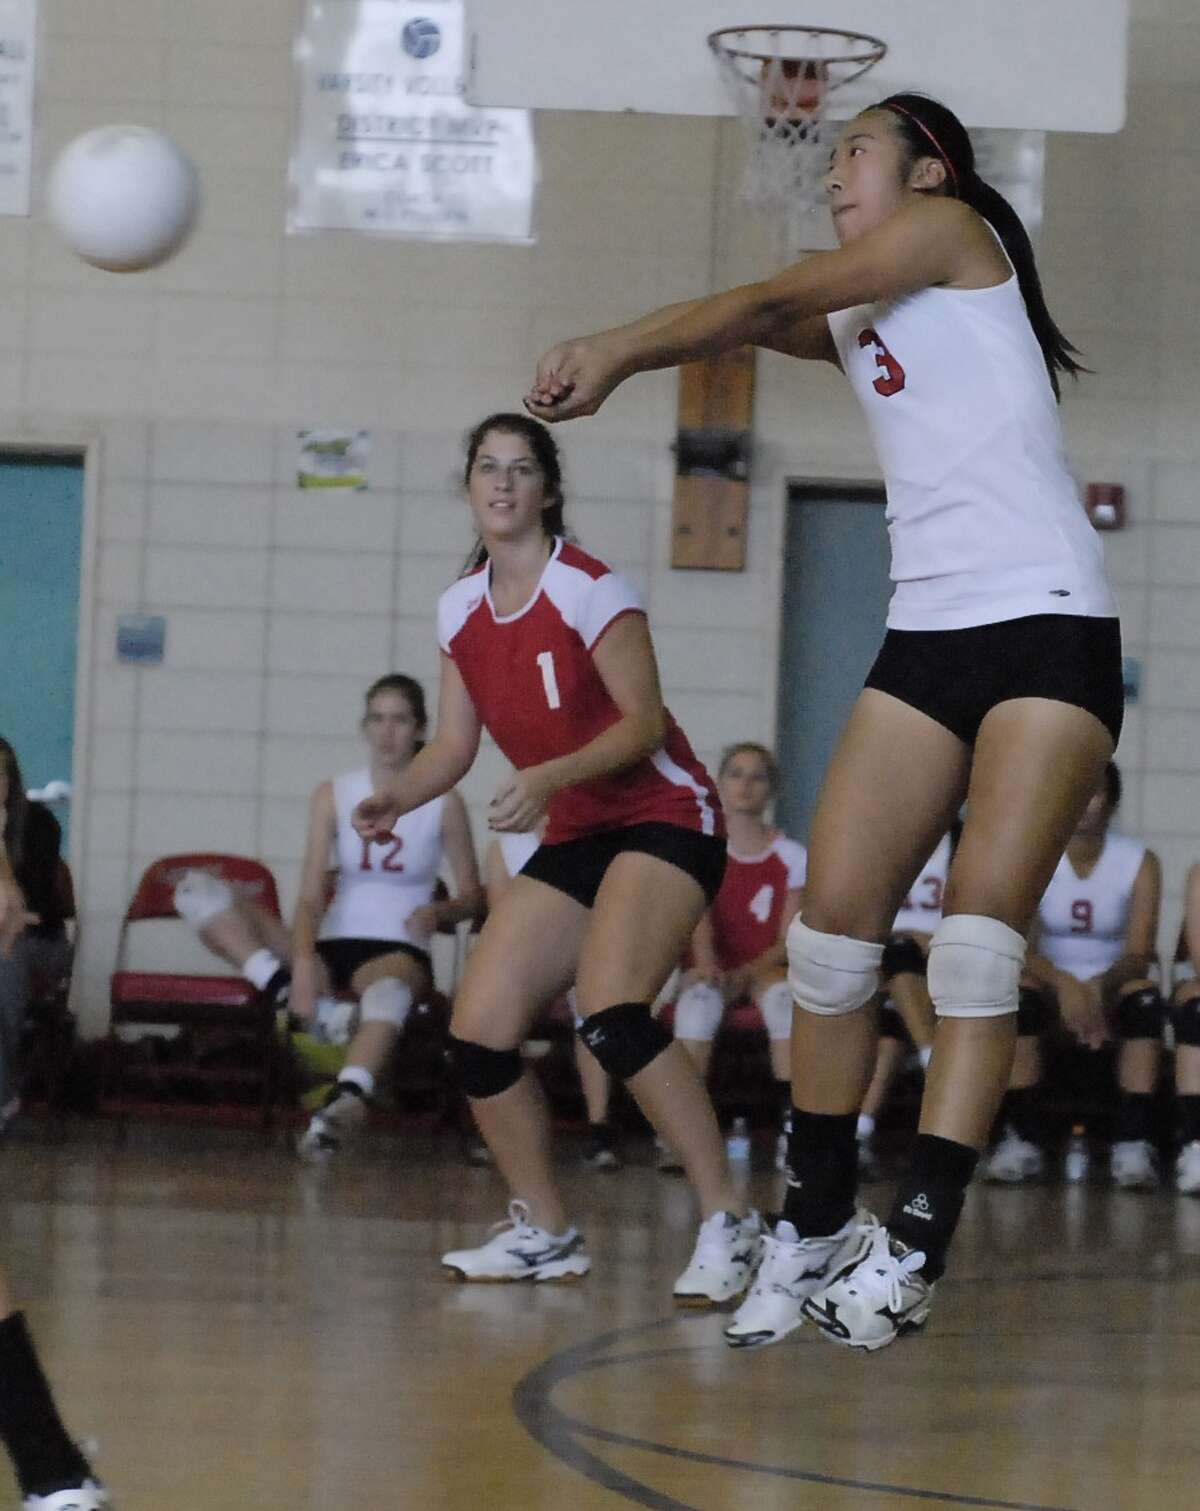 St. John's libero Lauren Resnick, No. 1, and her teammate Stephanie Guo, No. 3, defend the ball during their game at Lamar last month.